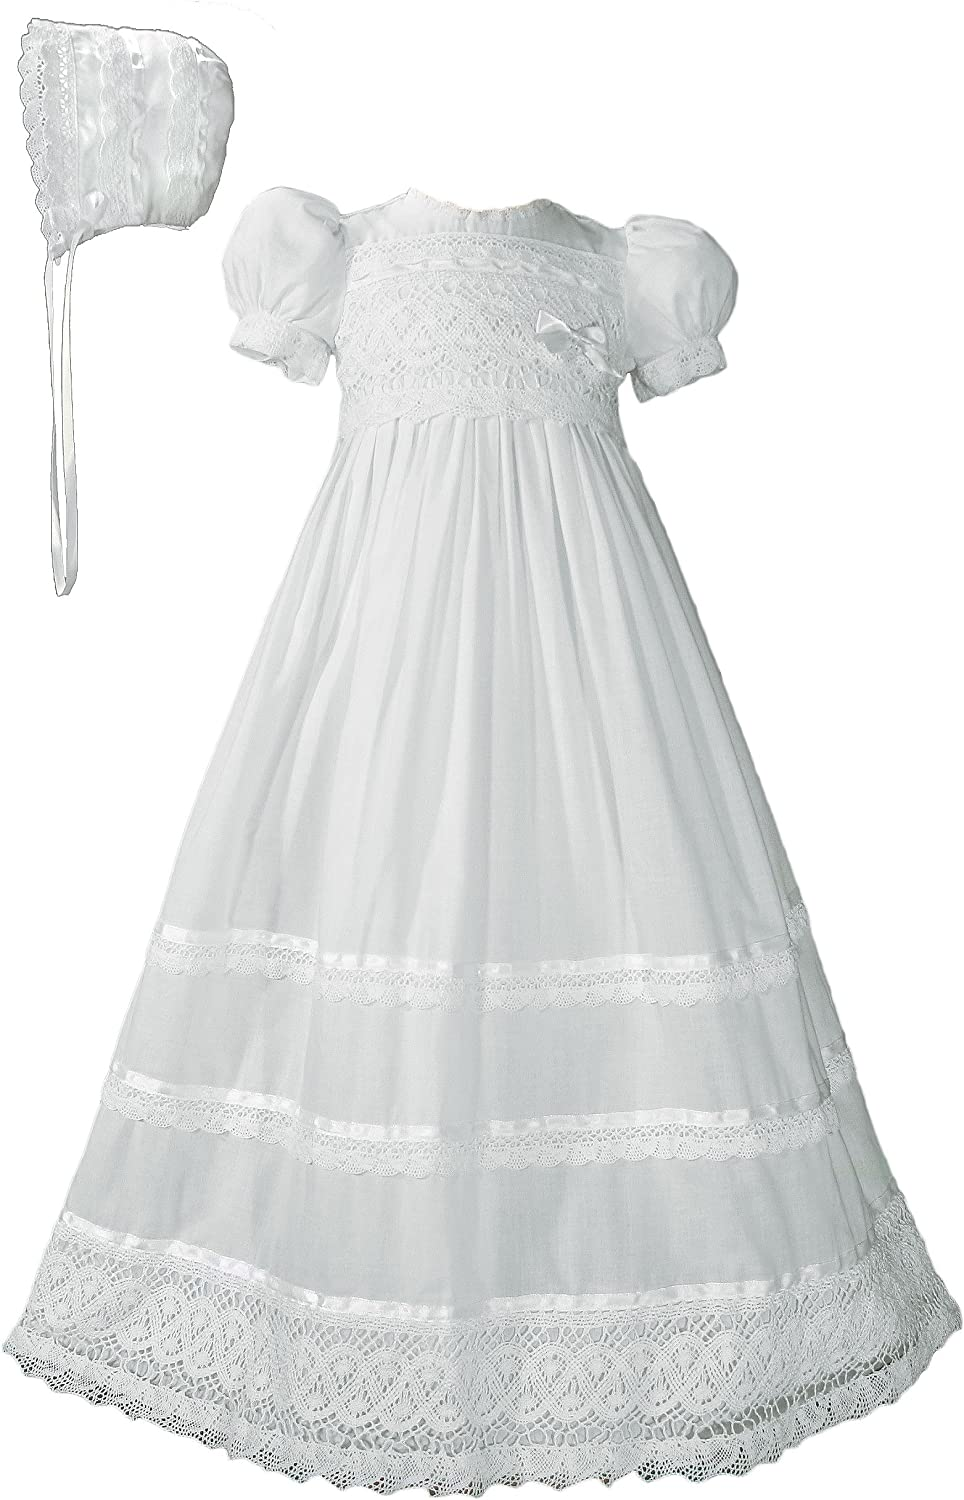 Image of Girls Cotton Short Sleeve Dress Christening Gown Baptism Gown with Laces and Ribbon